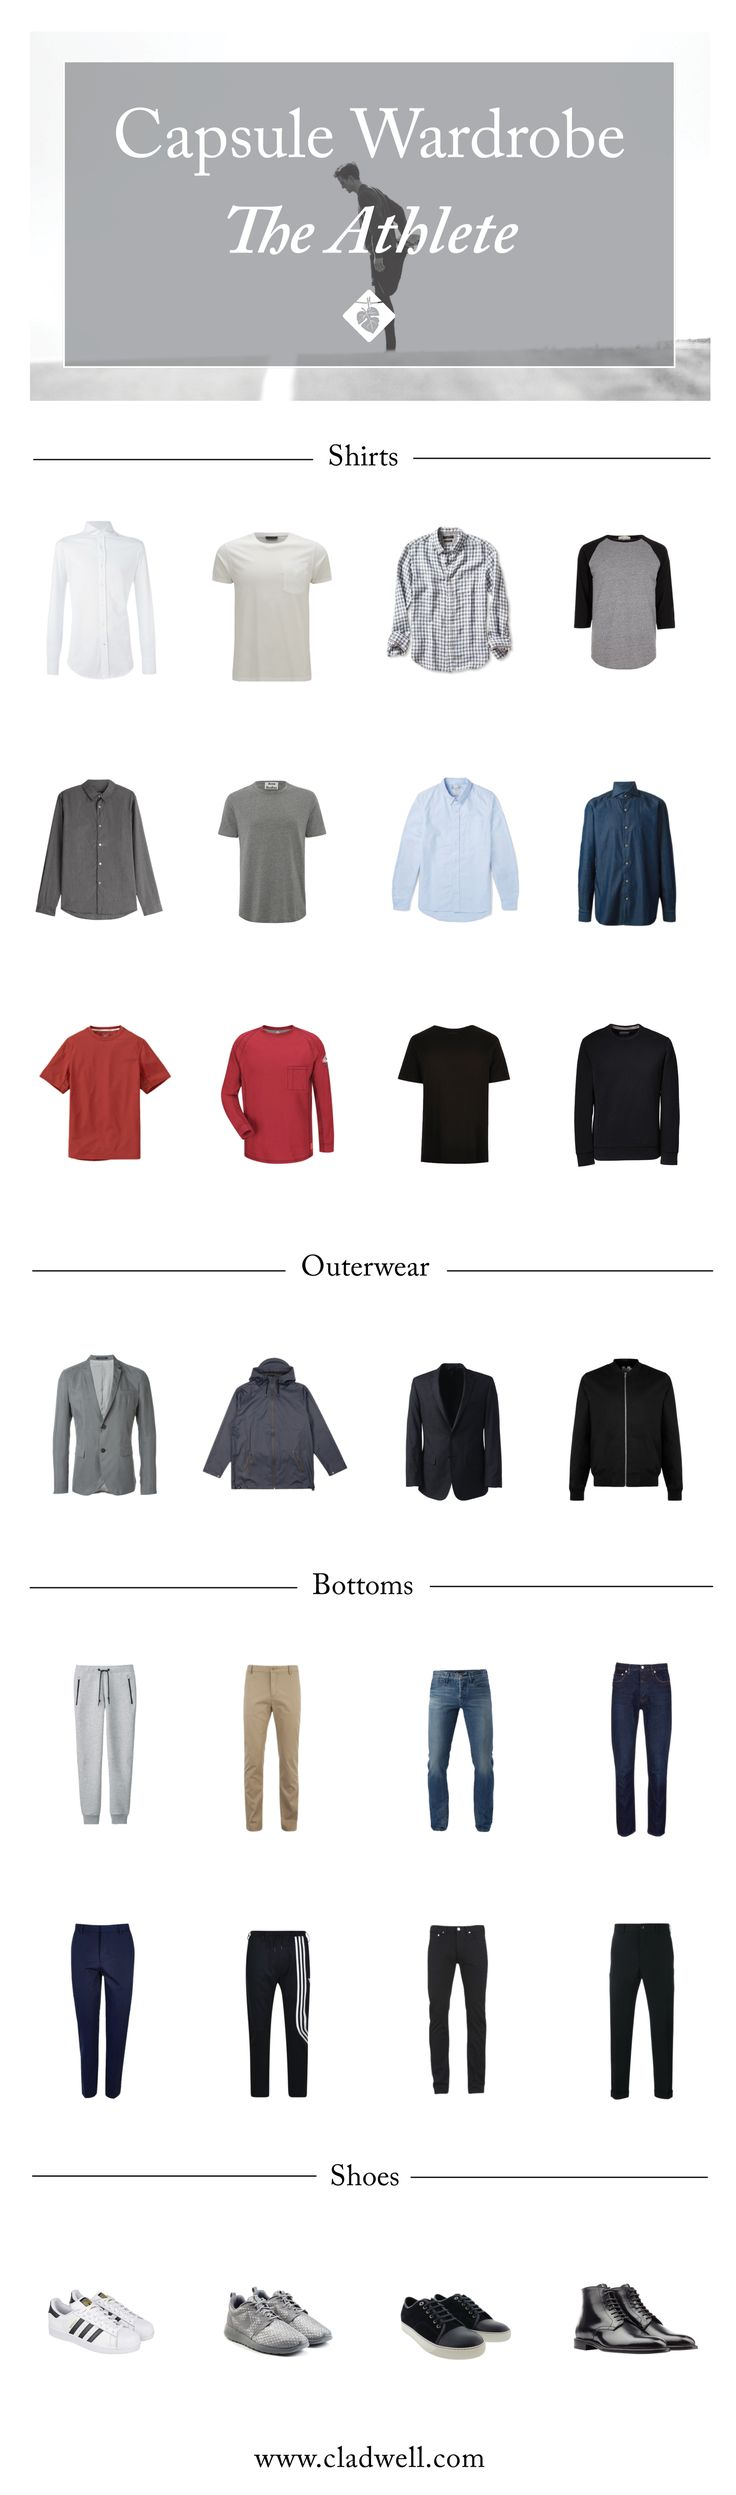 A Capsule for The Athlete - Cladwell #capsulewardrobe #menswardrobe #menscapsulewardrobe